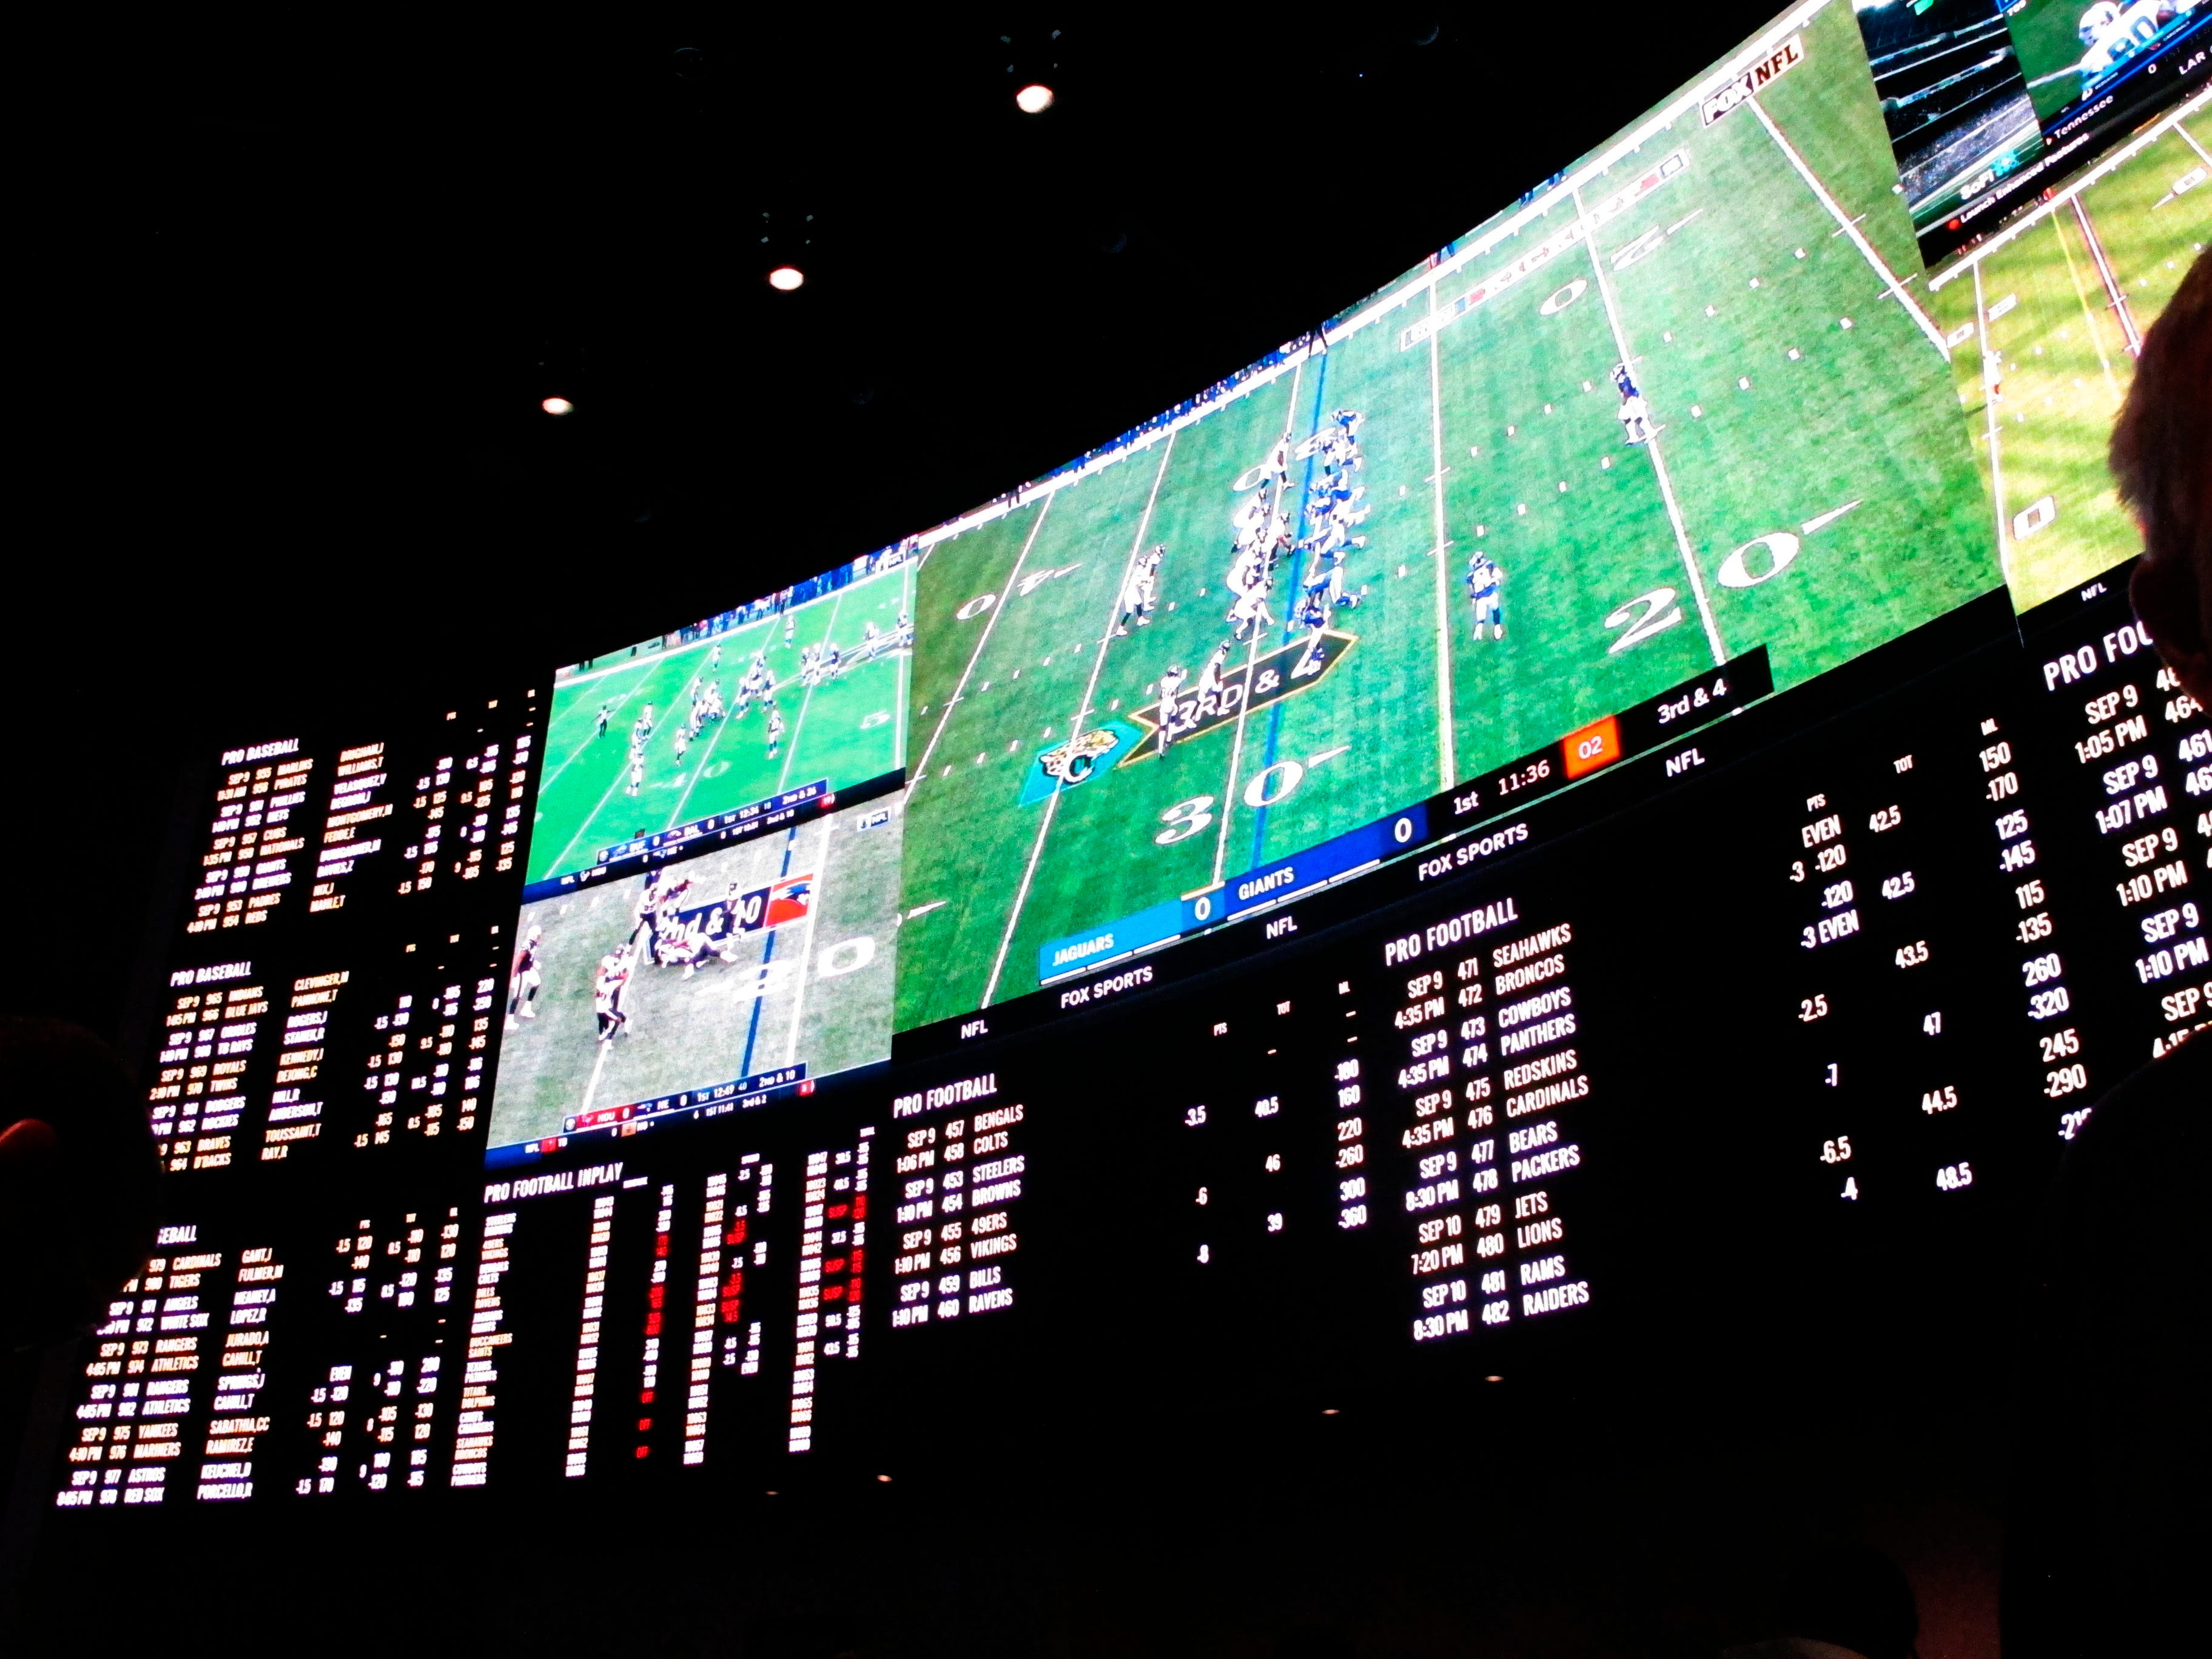 Here's what sports betting looks like in the future, according to Ted Leonsis